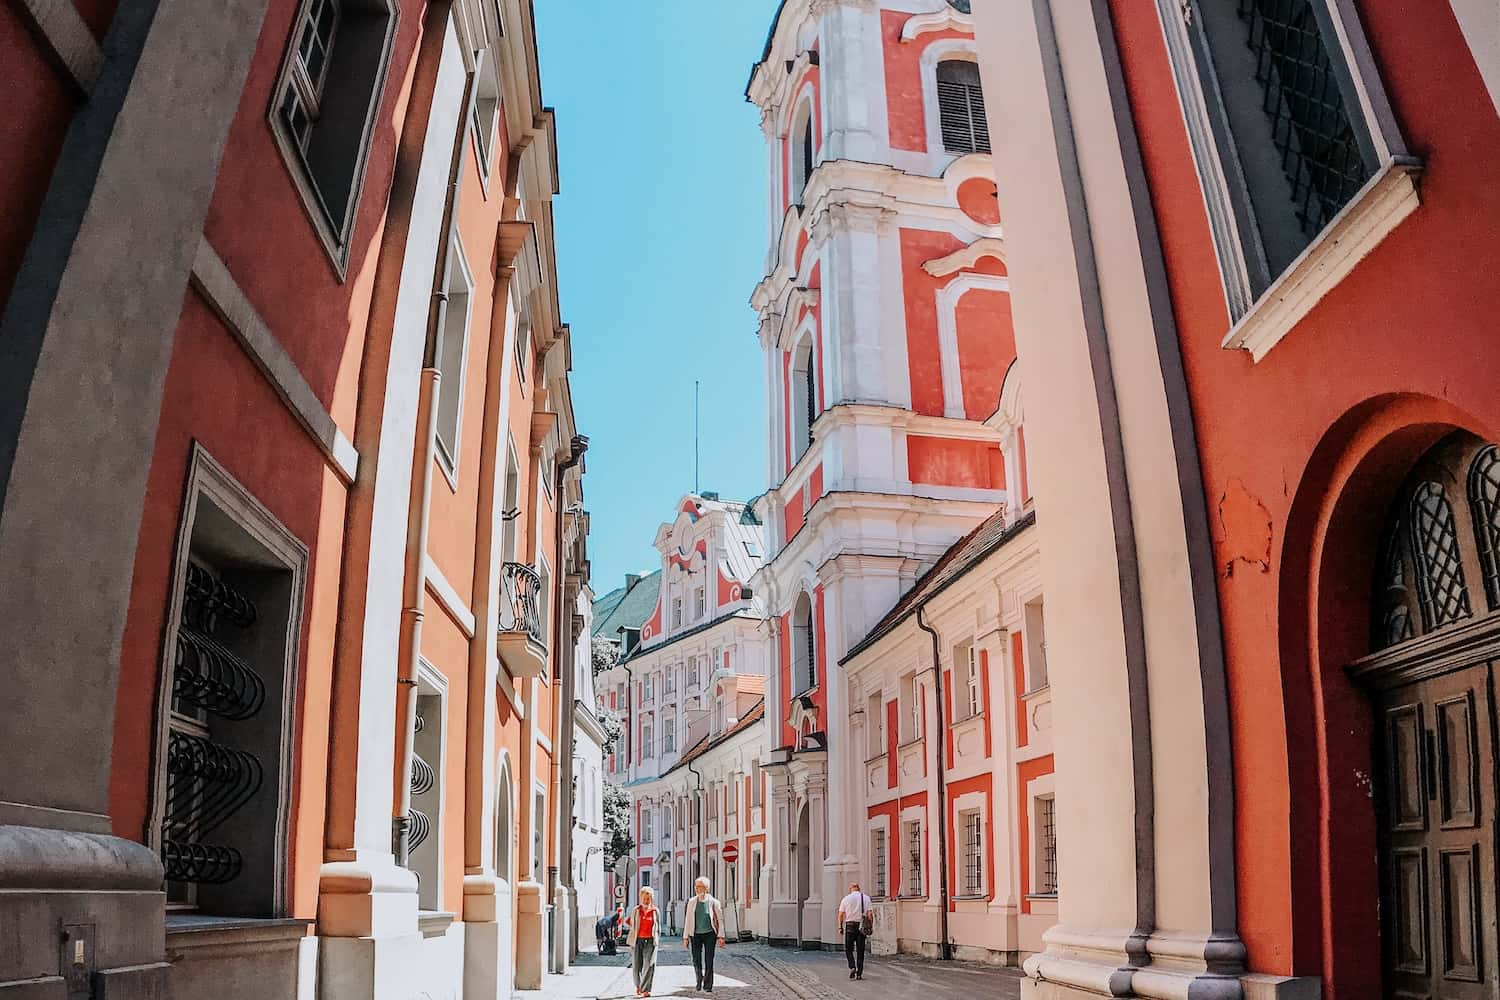 Poznań, Poland - Things to see & do during a city break